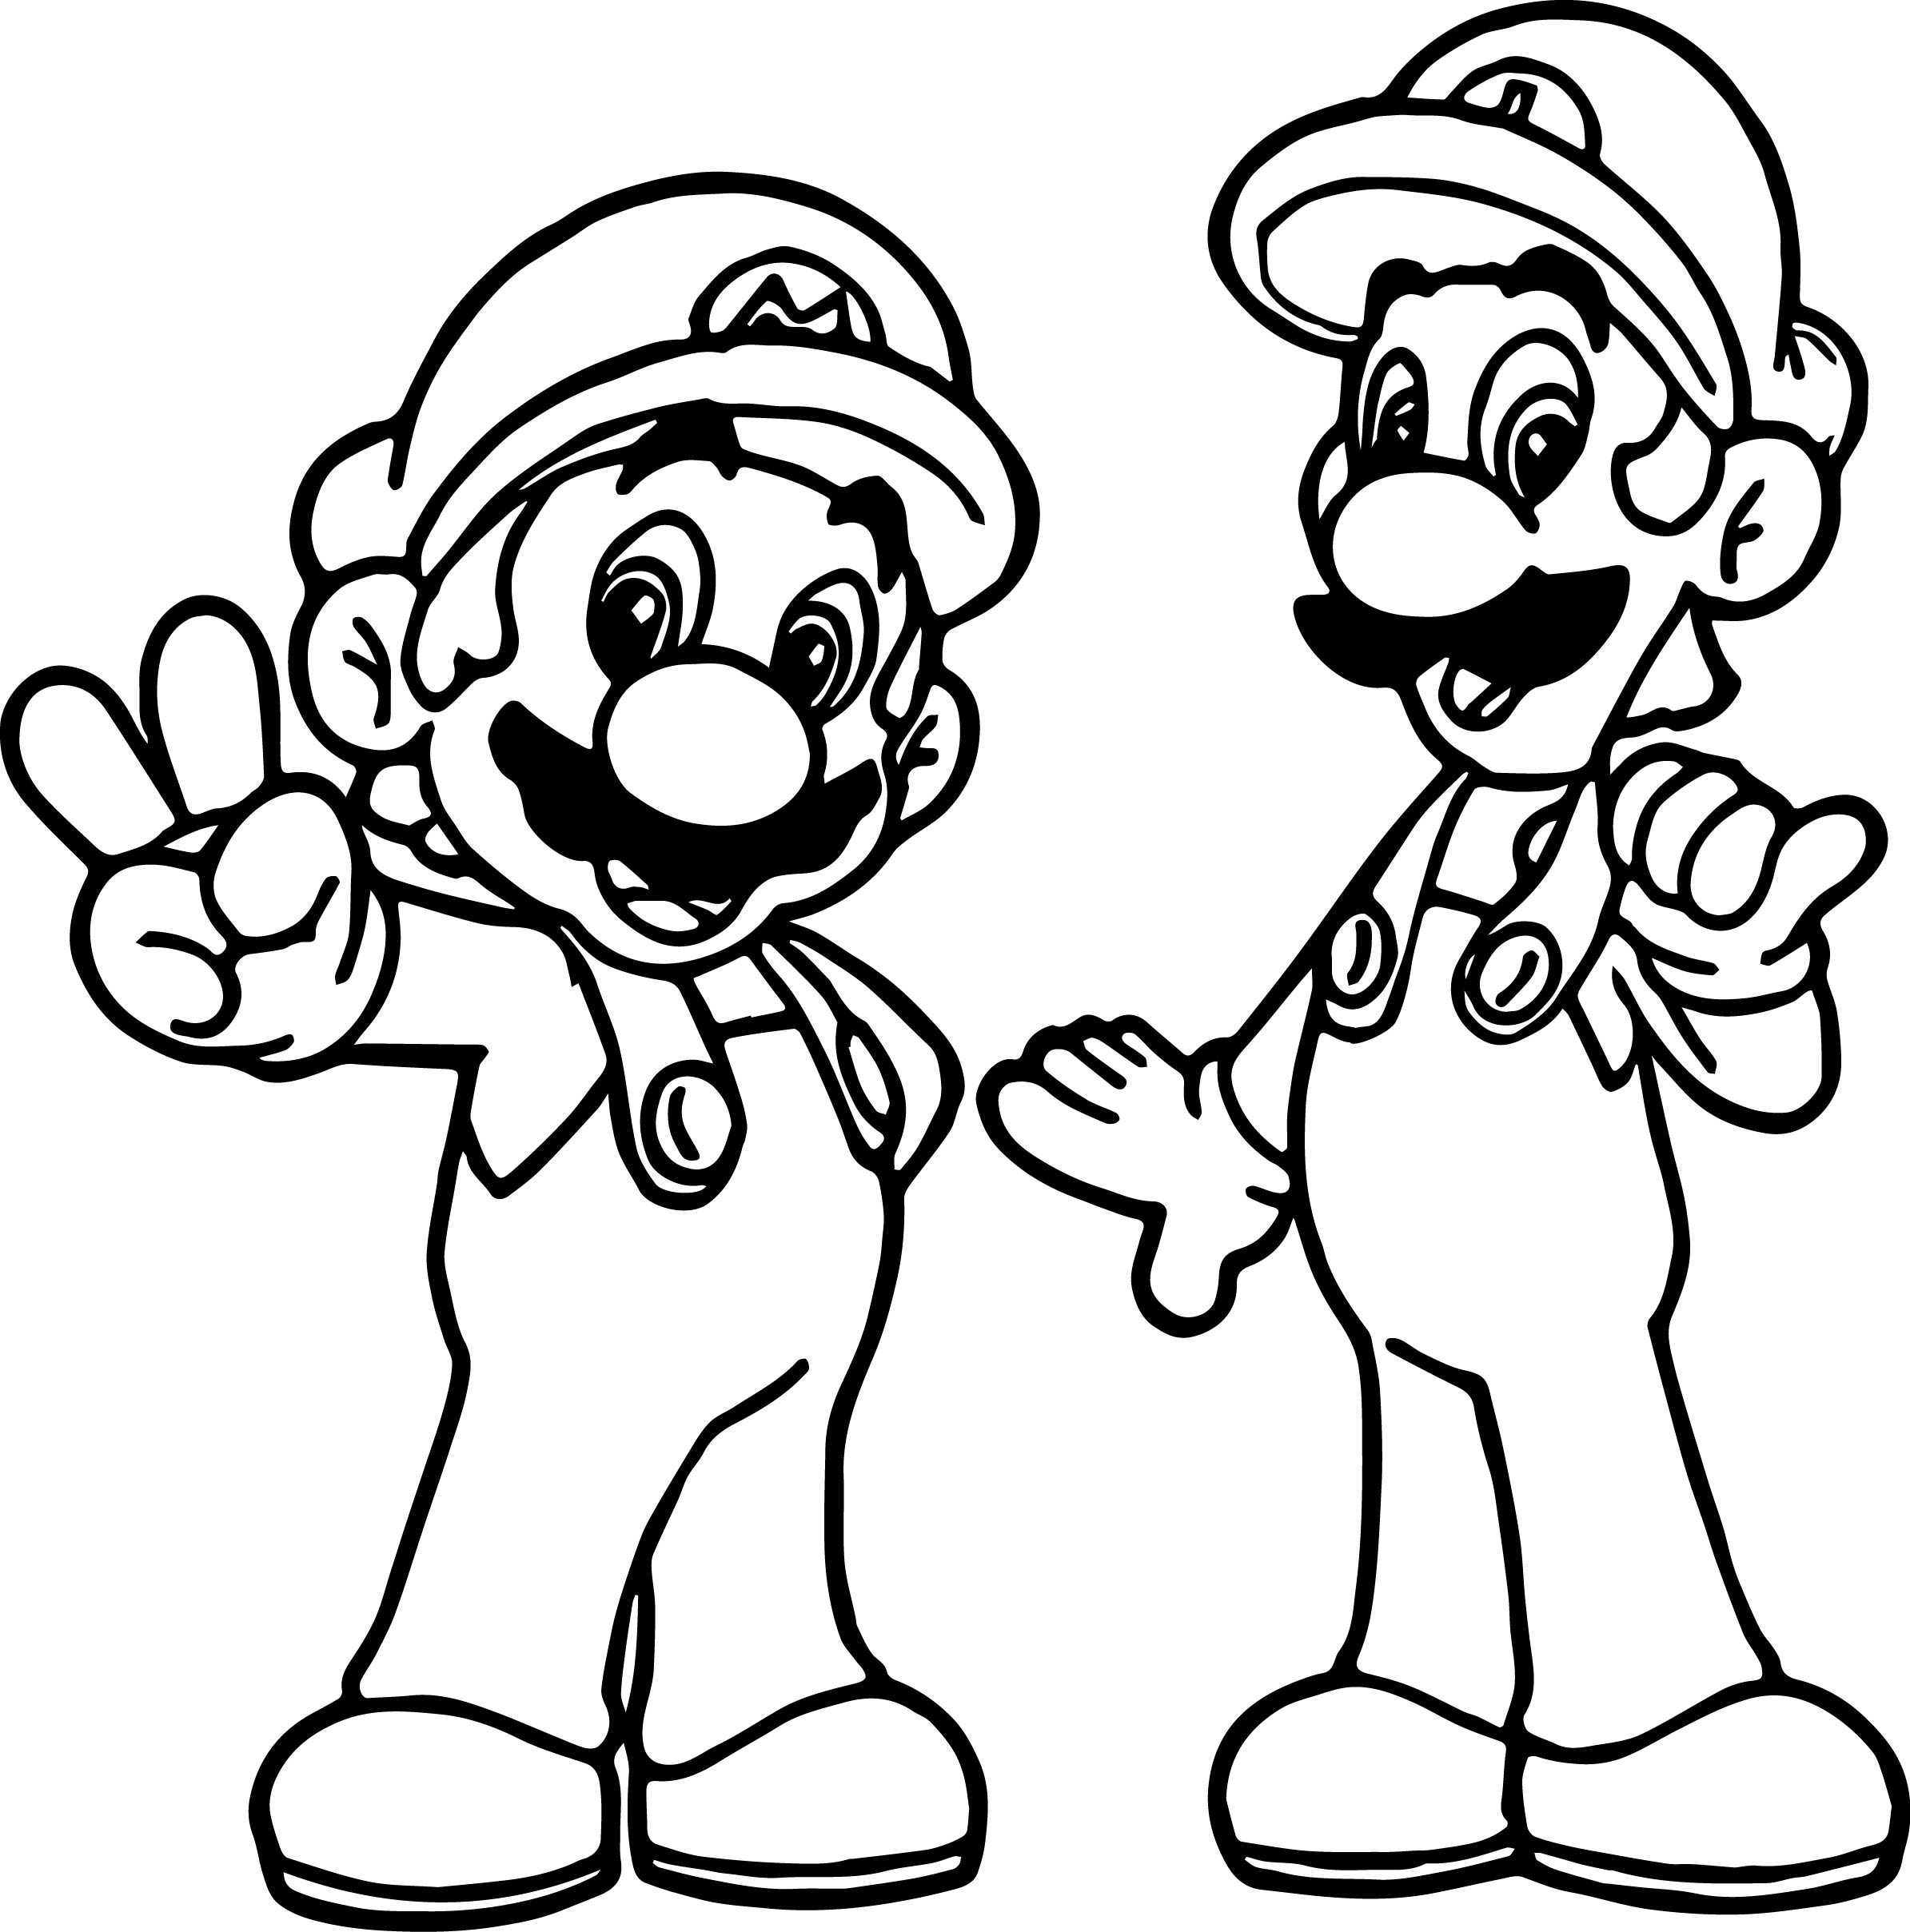 2389x2417 Mario And Luigi Coloring Pages For Kids Beautiful Mario Coloring